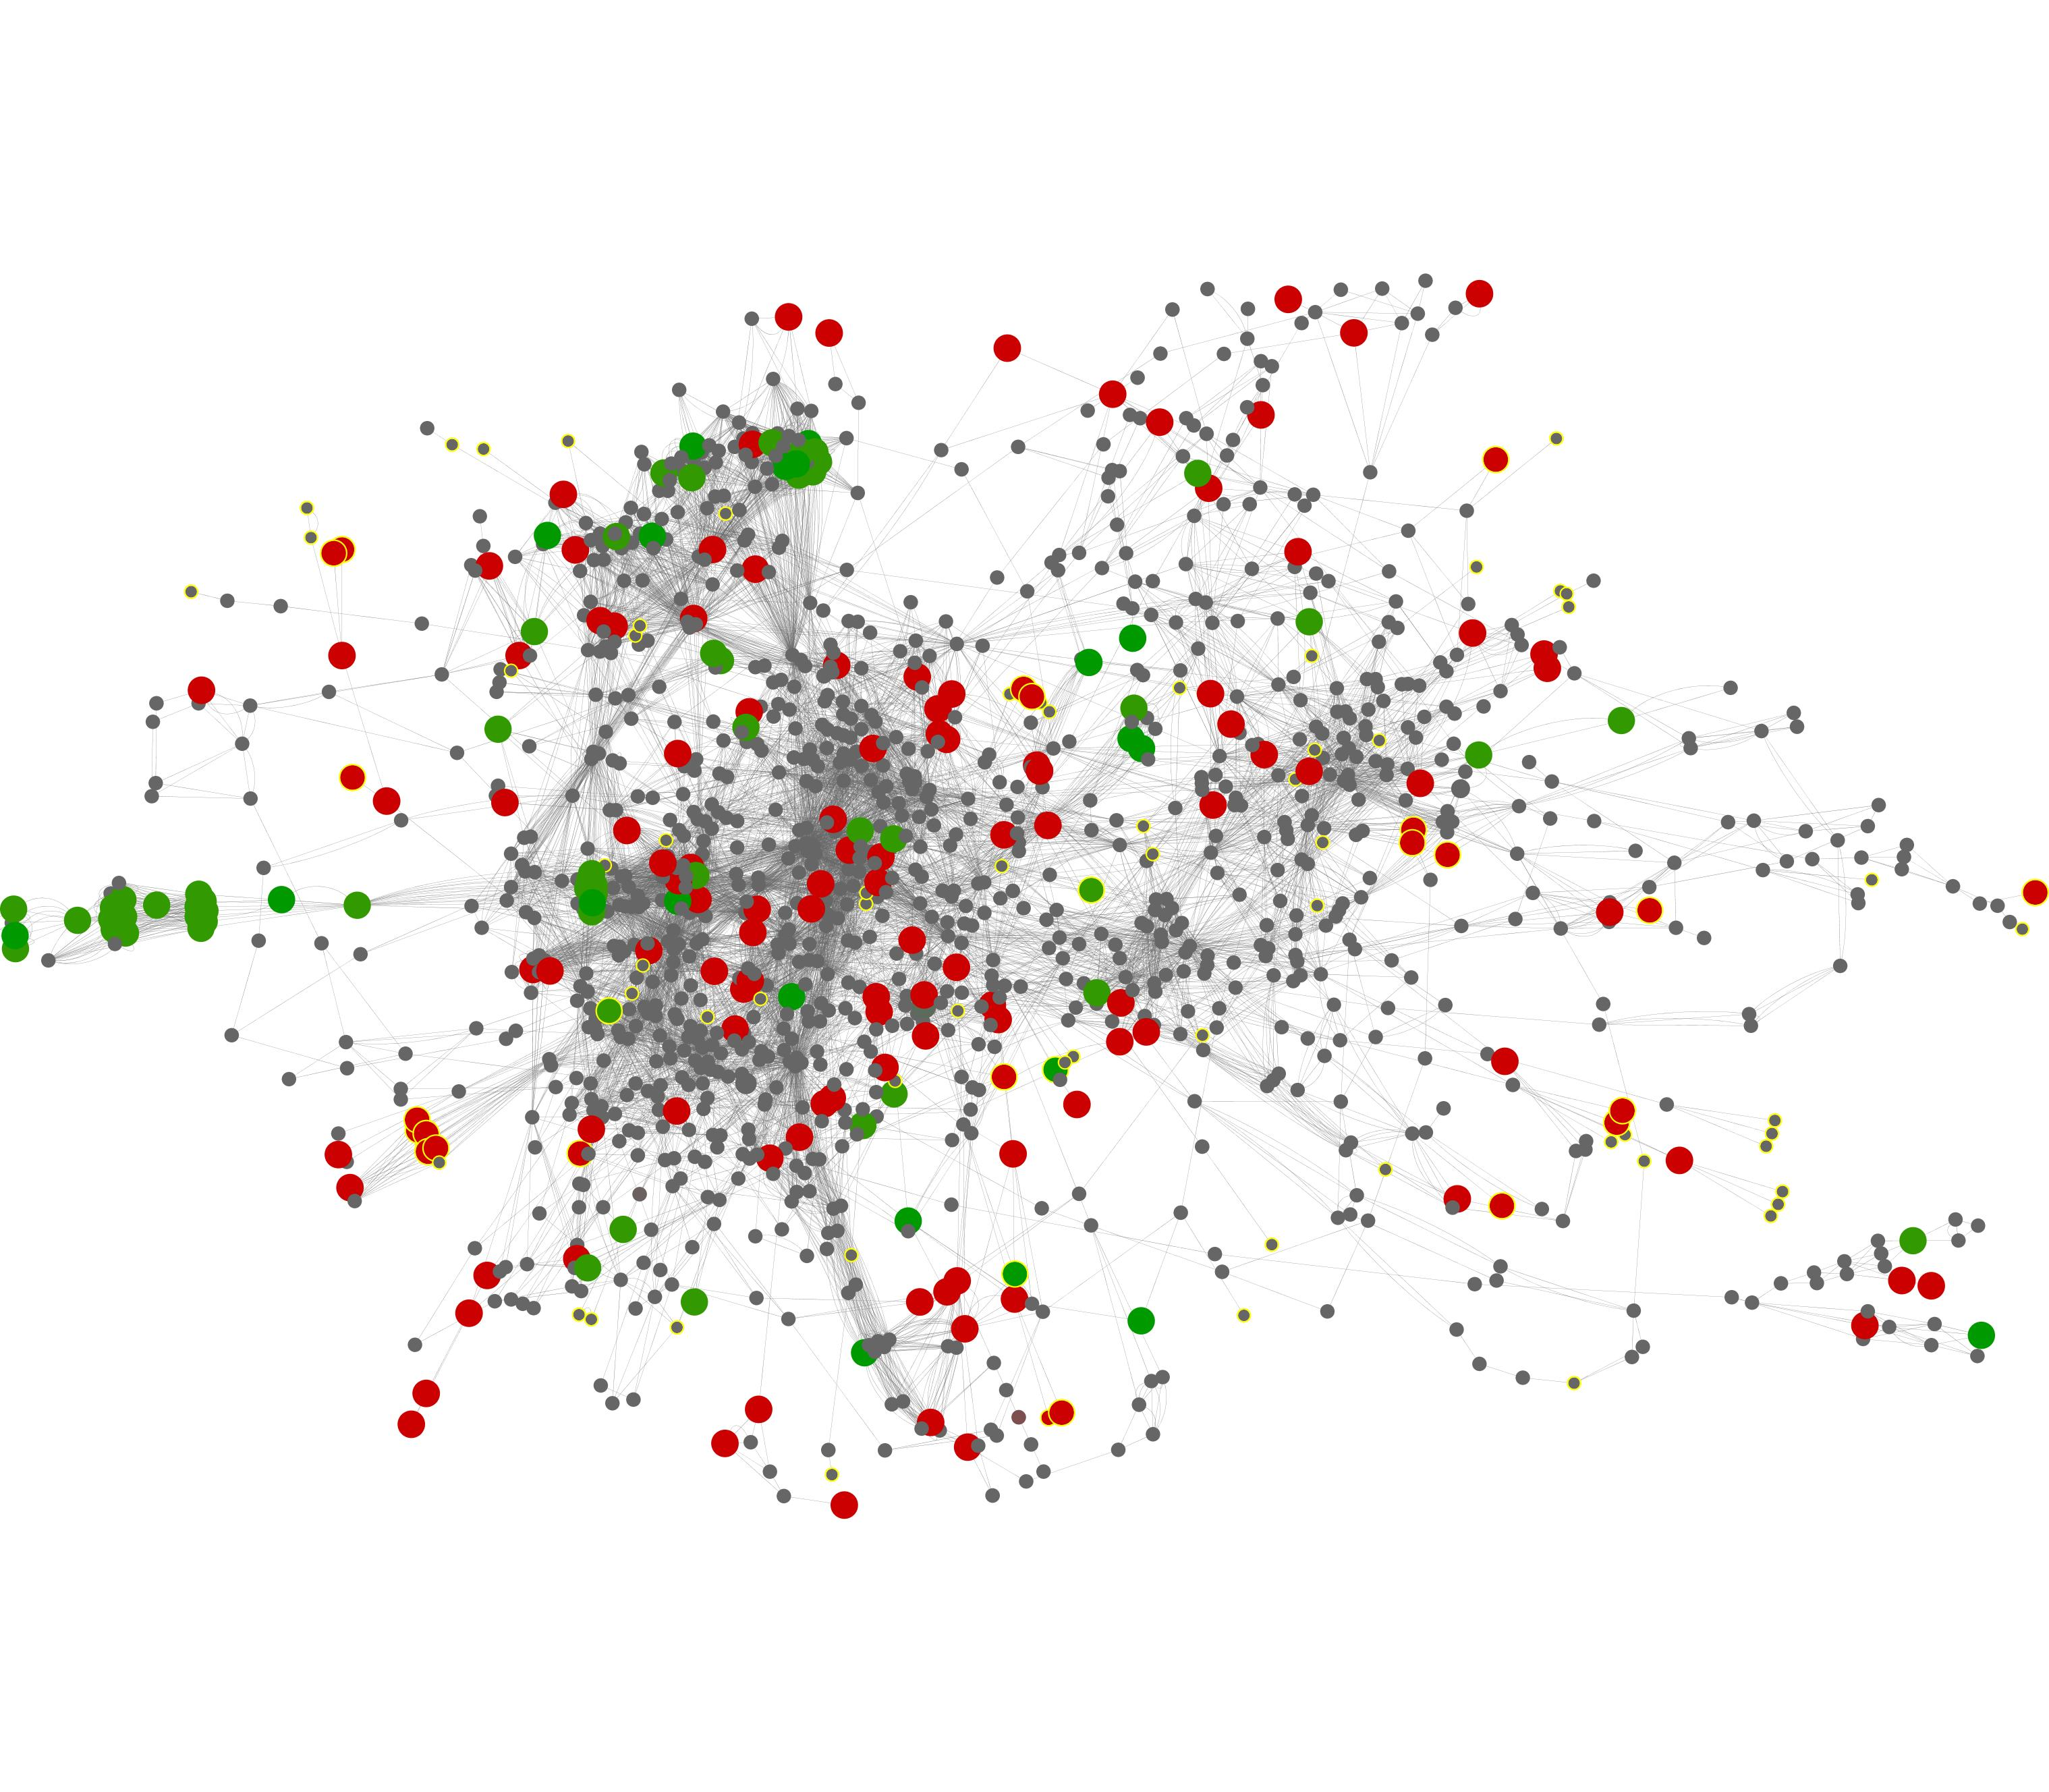 A community-level metabolic network of the gut microbiome. Nodes represent enzymes and edges connect enzymes that catalyze successive metabolic steps. Enzymes associated with obesity appear as larger colored nodes (red=enriched, green=depleted).